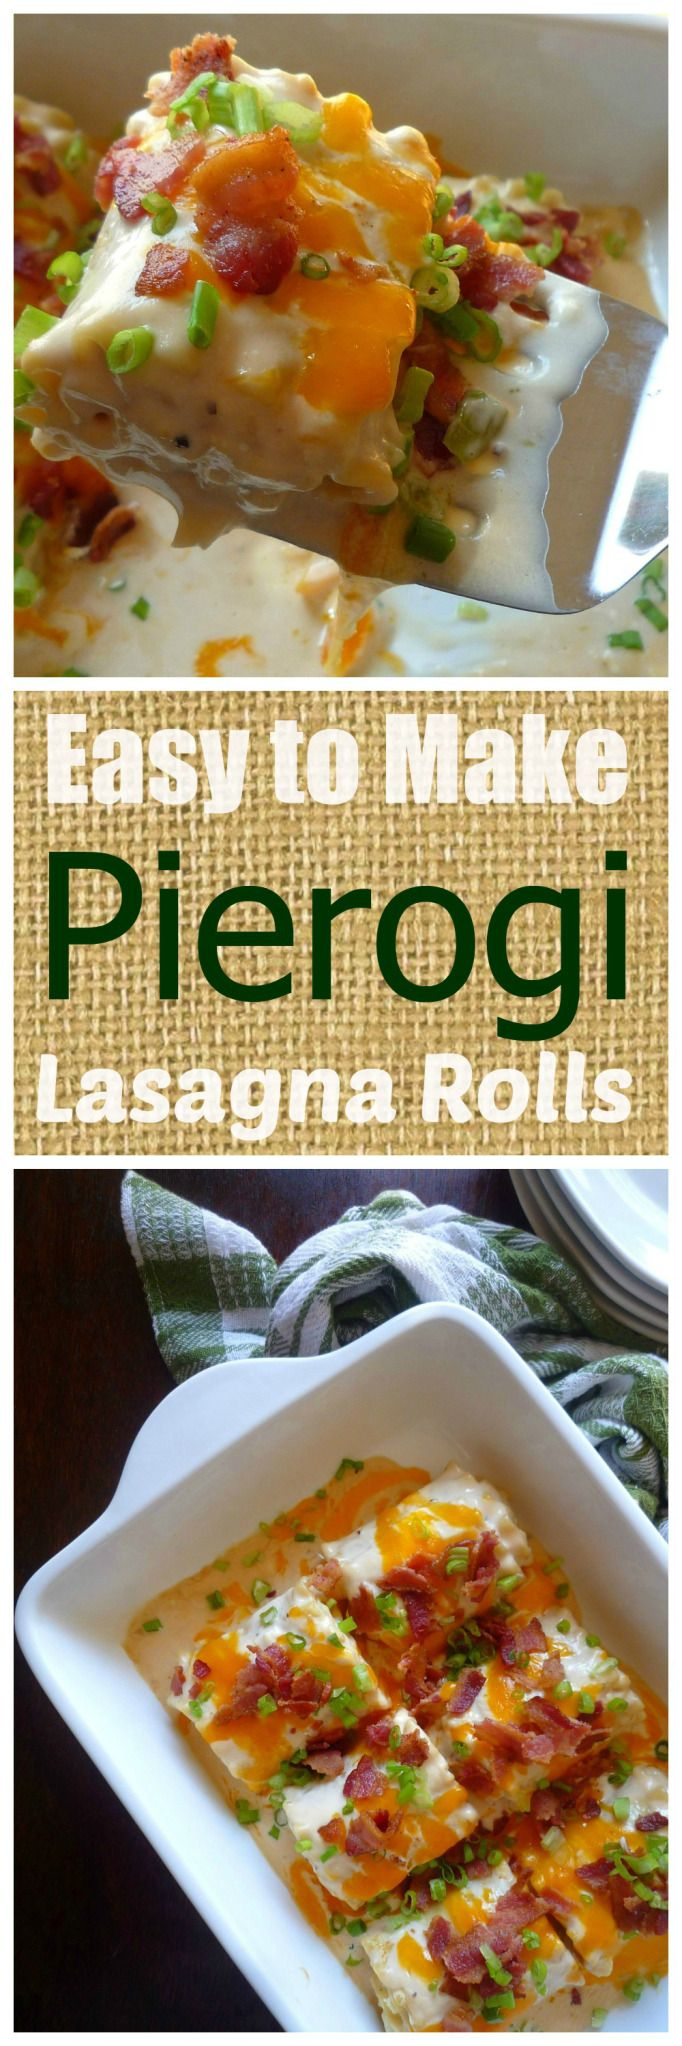 Easy to Make Pierogi Lasagna Rolls are for those of us housewives that do not look forward to spending hours in the kitchen making Old Fashioned Polish Pierogies, but enjoy the delicious taste of a homemade pierogi. Traditionally Pierogies are pretty time-consuming being they are made by making a homemade dough and wrapping the dough around a savory or even sweet filling; then cooked in salted boiling water.